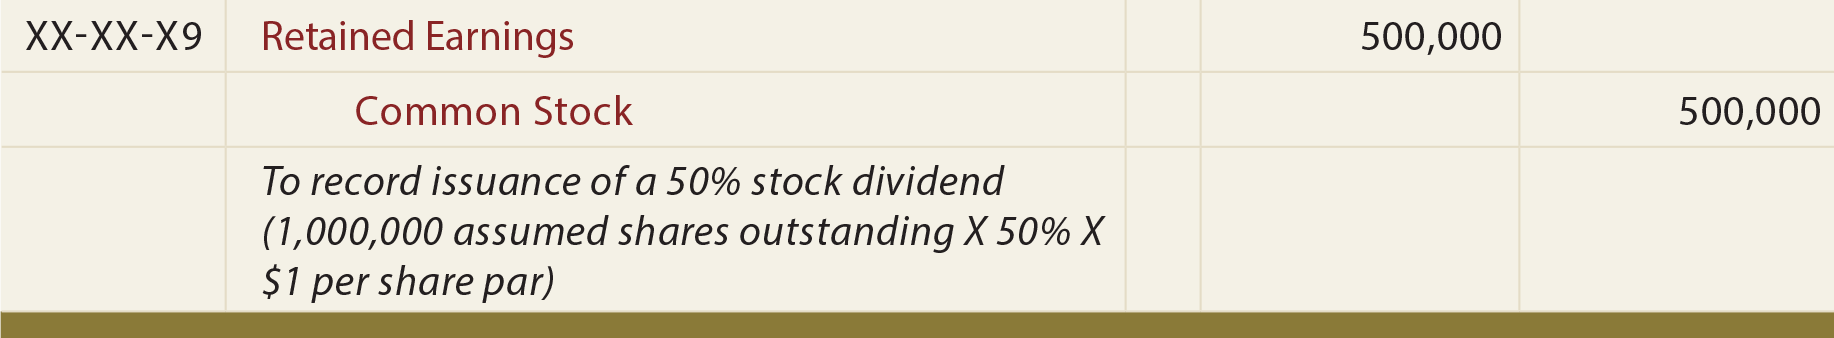 Large Stock Dividend General Journal Entry  - To record issuance of large stock dividend